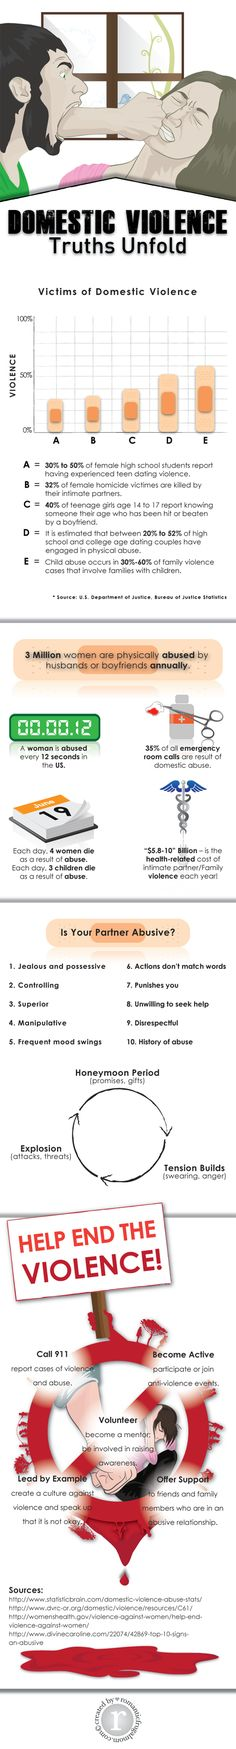 Domestic Violence: Truth Unfolds [INFOGRAPHIC]